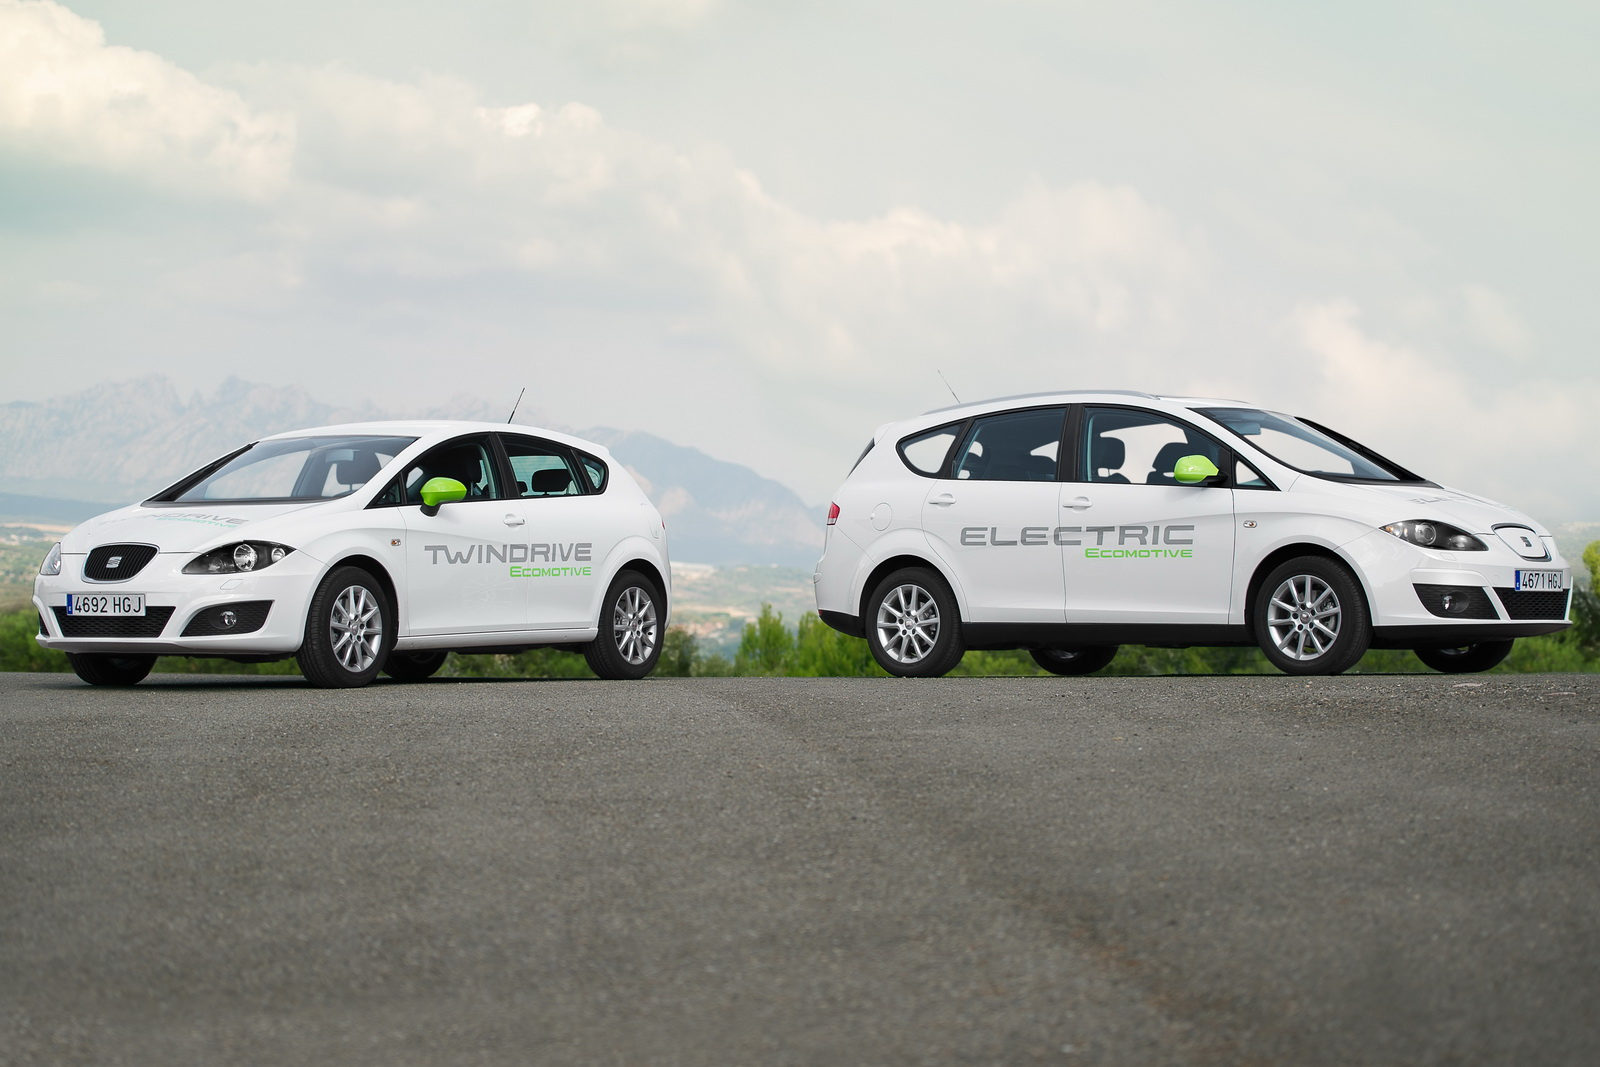 2012 Seat Pure Electric and Plug in Hybrid Seat Wrapped off New Pure Electric and Plug in Hybrid Prototypes